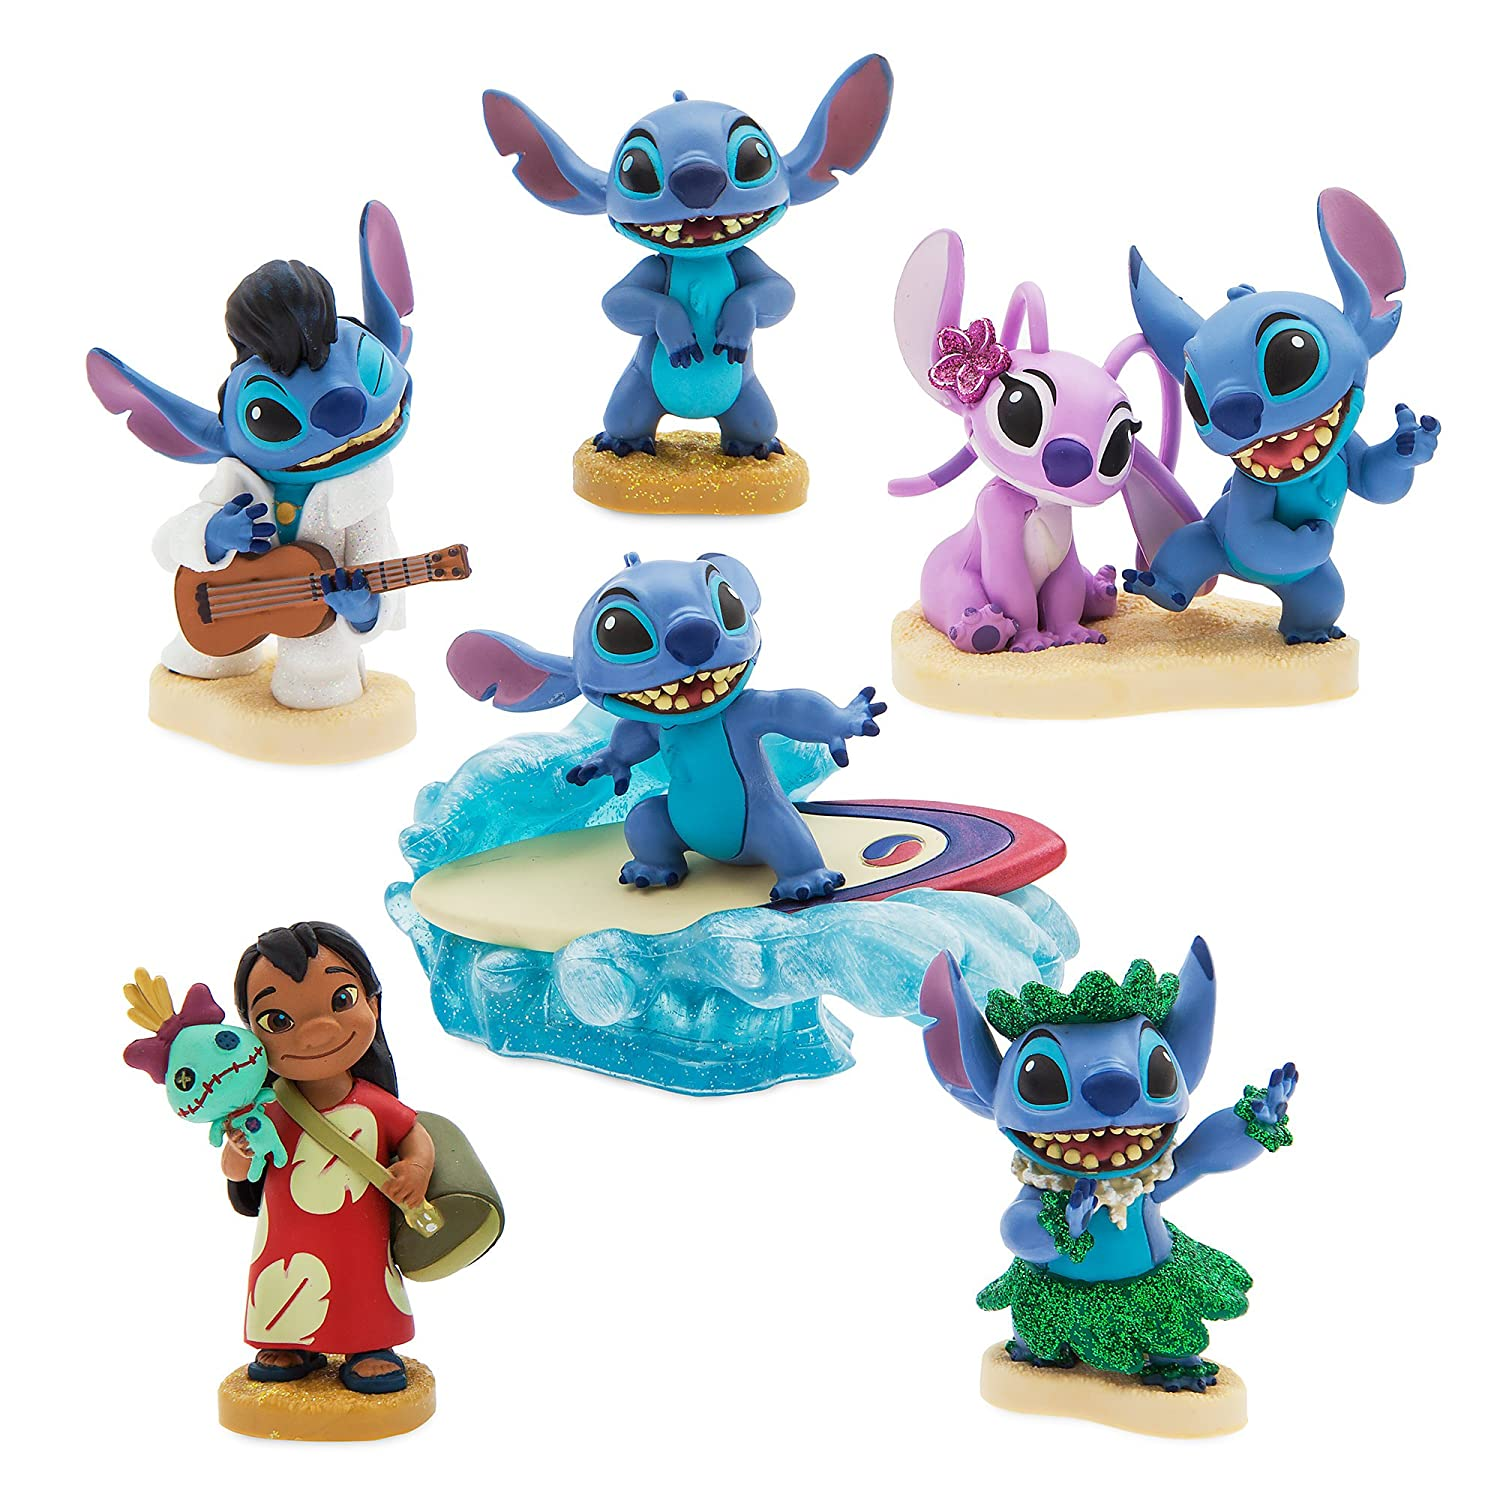 Amazon.com: Disney Lilo & Stitch Figure Play Set: Toys & Games